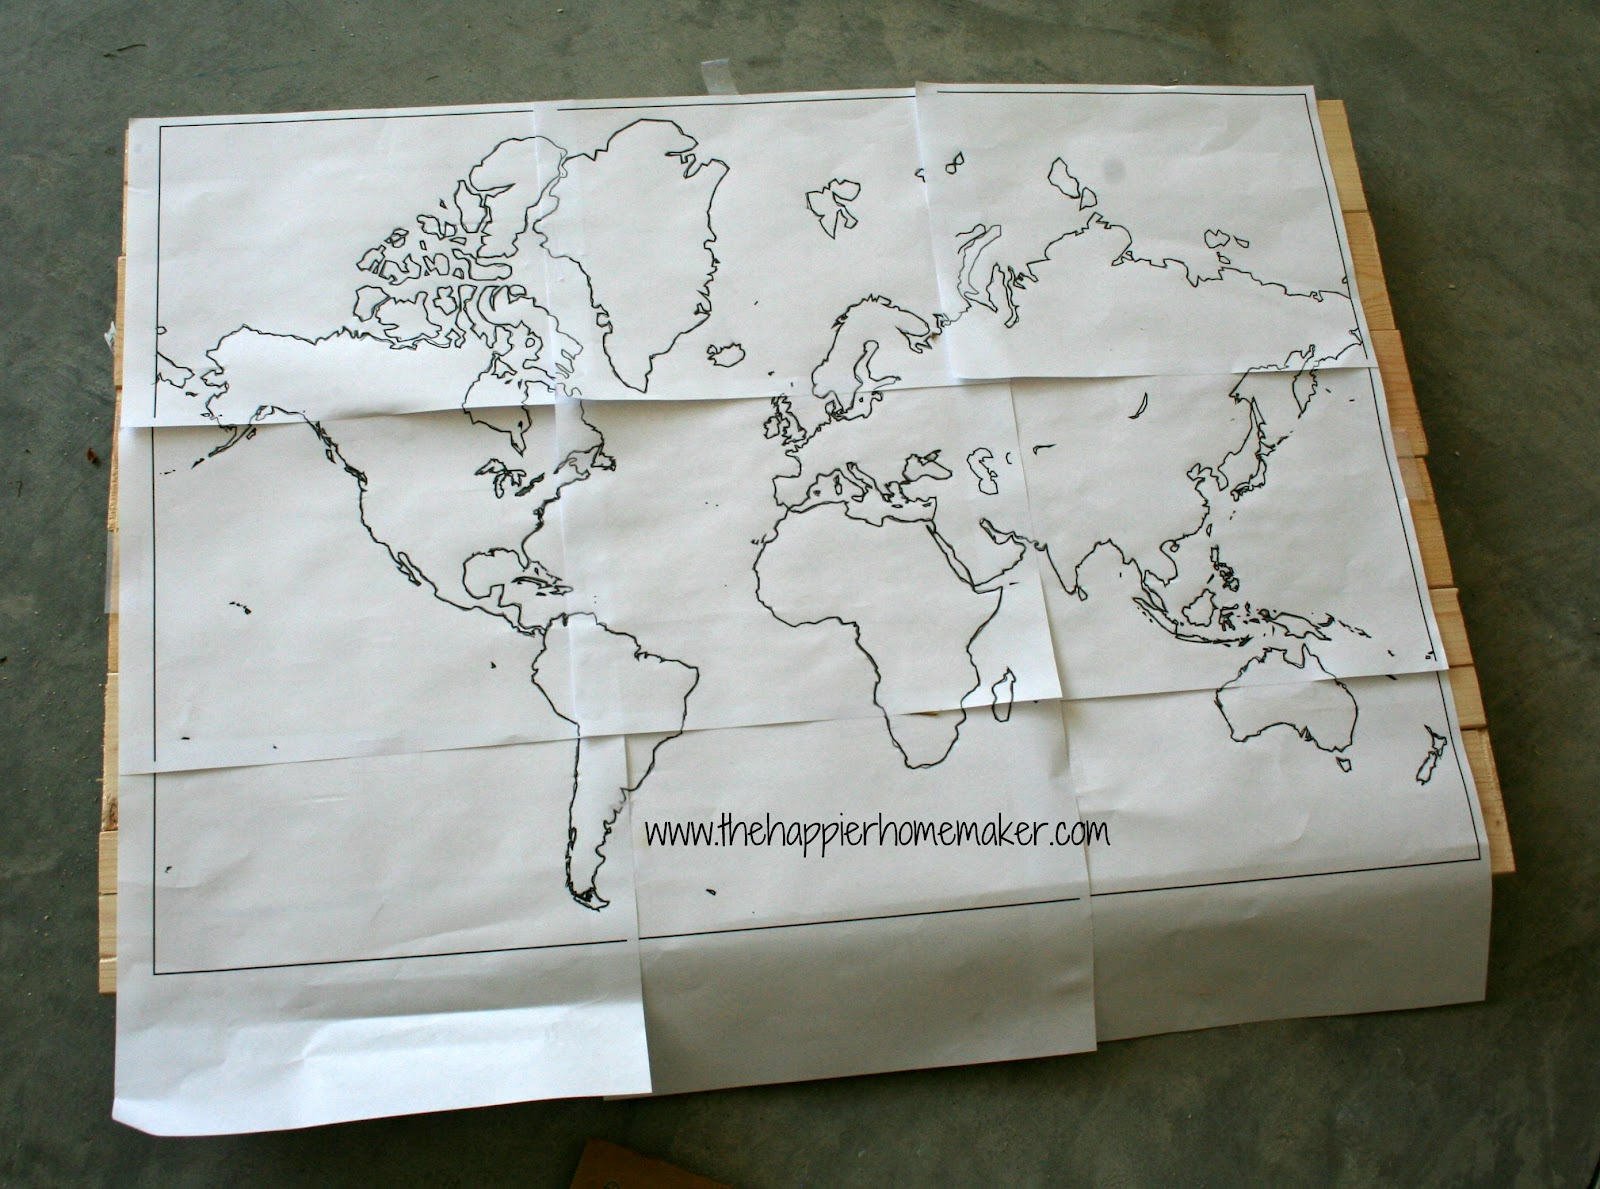 Diy wooden world map art the happier homemaker diy wooden world map art gumiabroncs